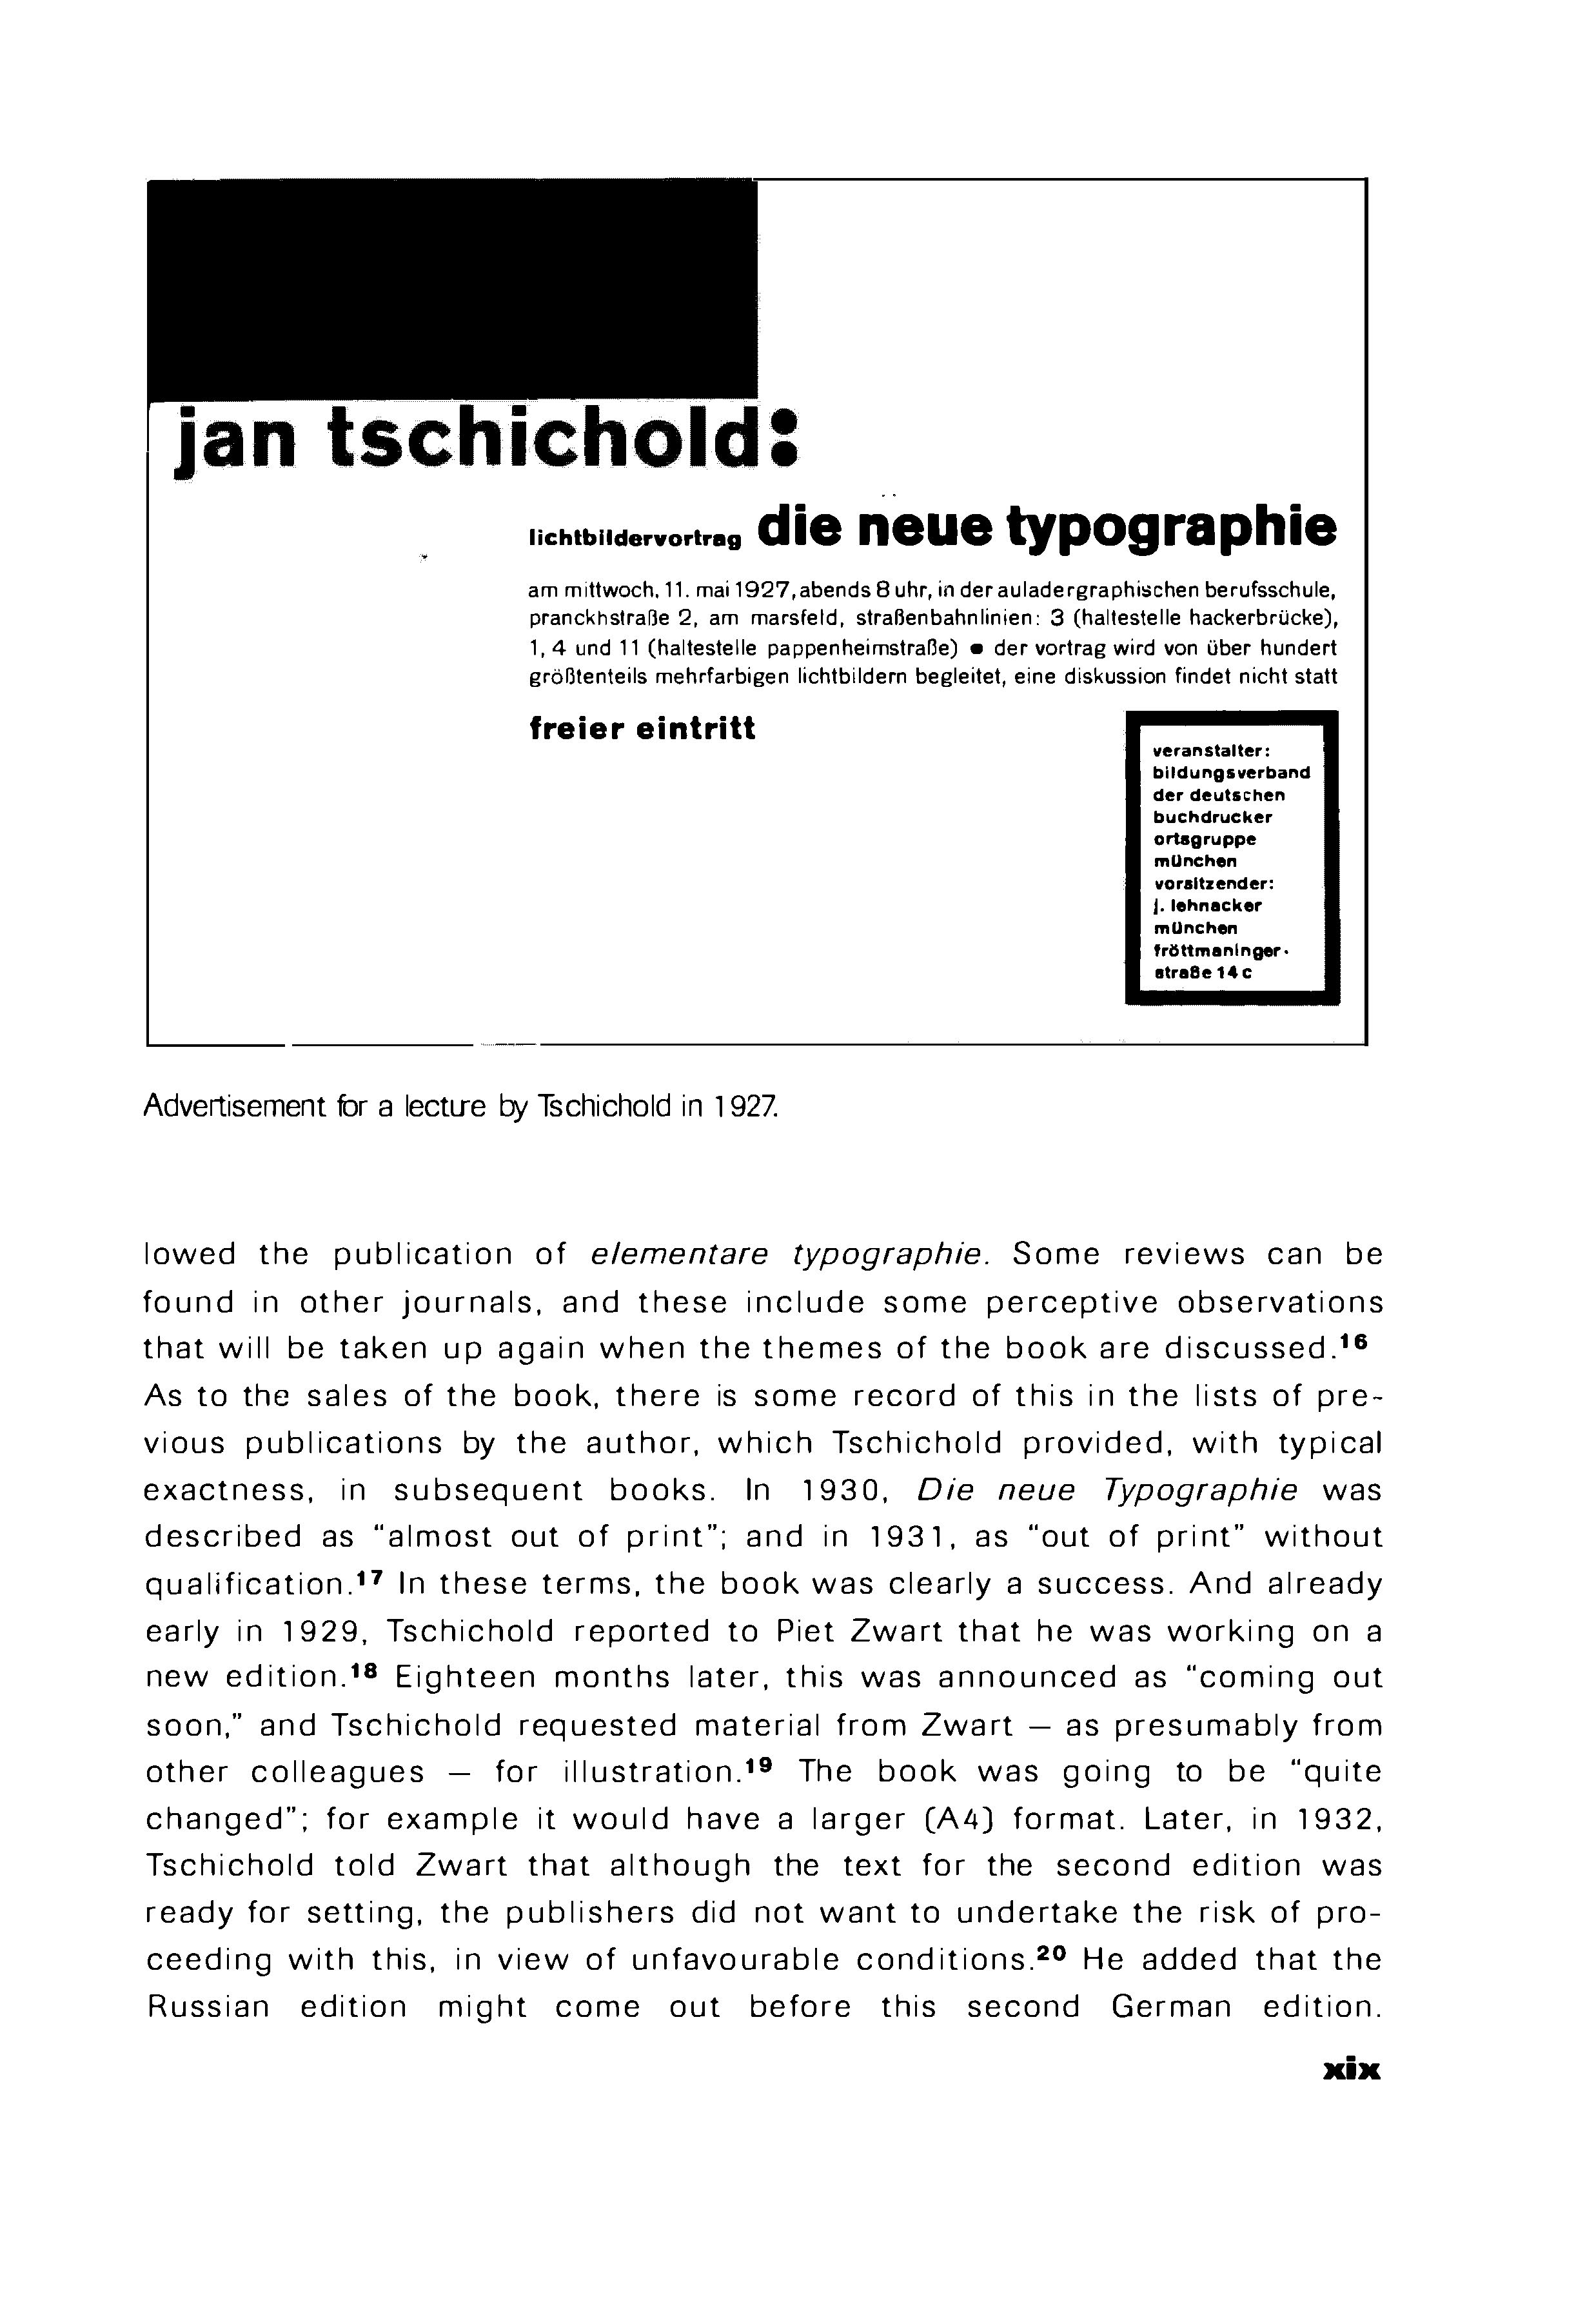 jan-tschichold-the-new-typography-1928_page_019